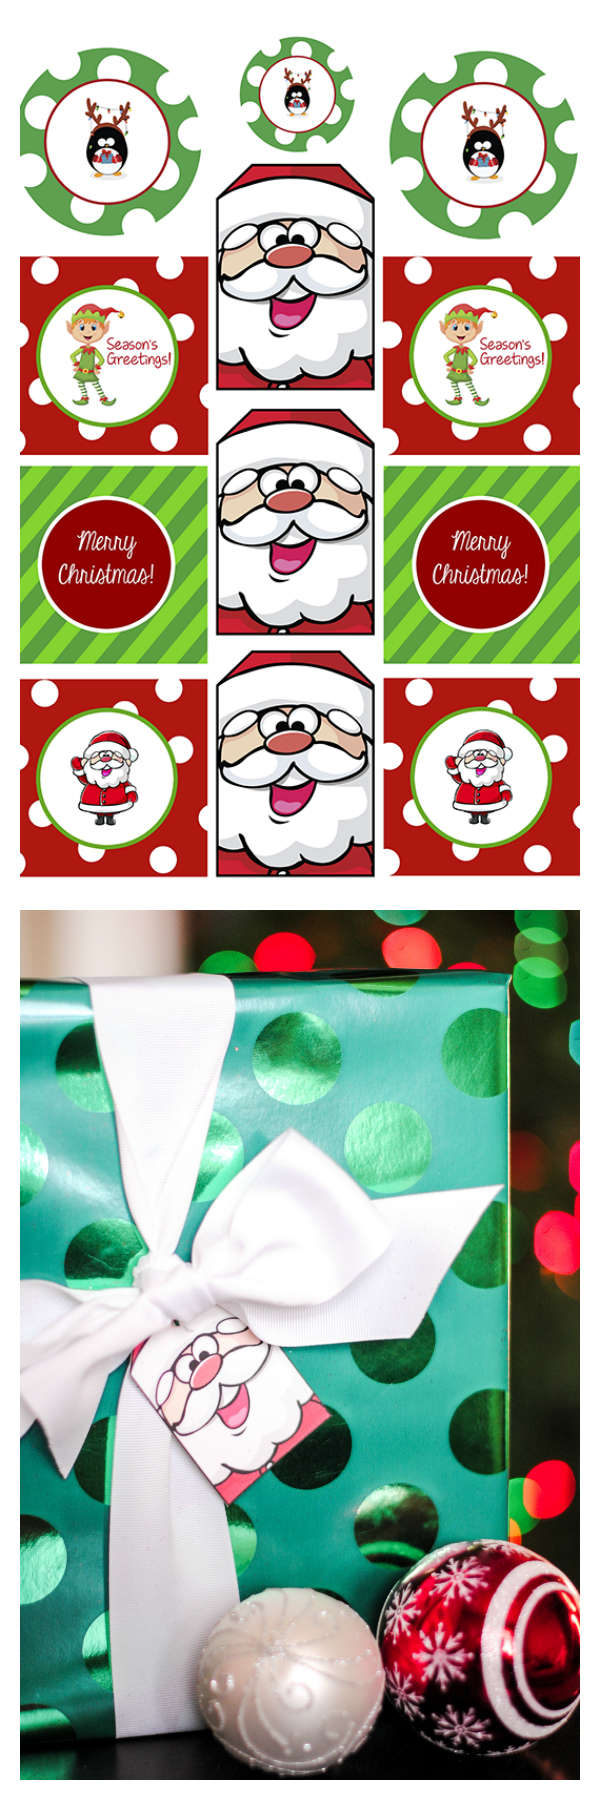 Free Printable Christmas Gift Tags-Just print and use them on your holiday packages this year! So easy and cute!